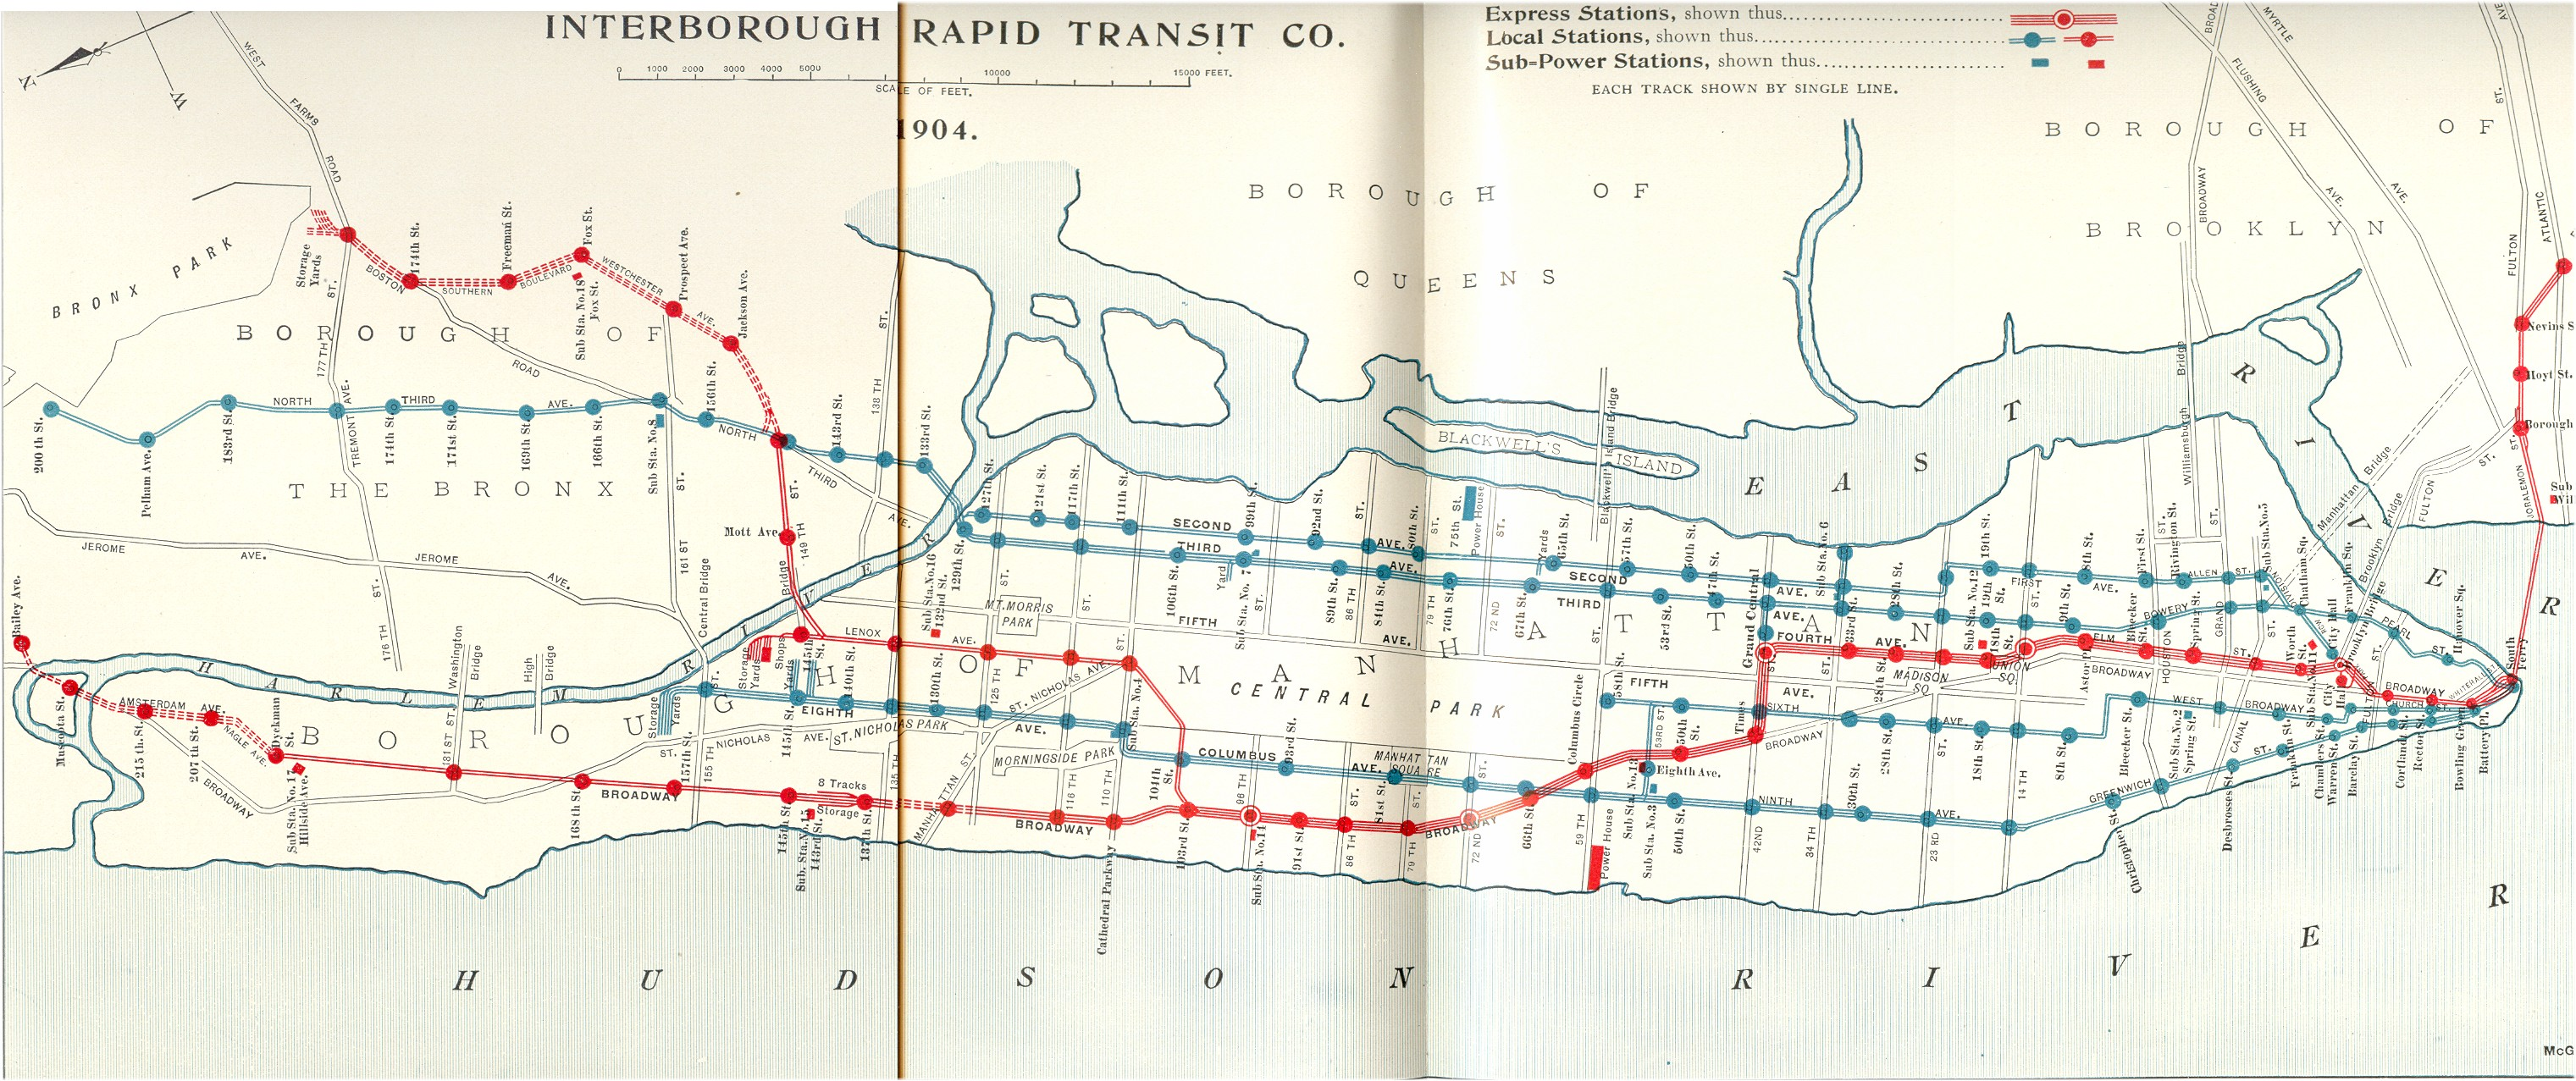 The New York Subway Chapter 01 Route Of Wiring Schematic Irtbook Routemap